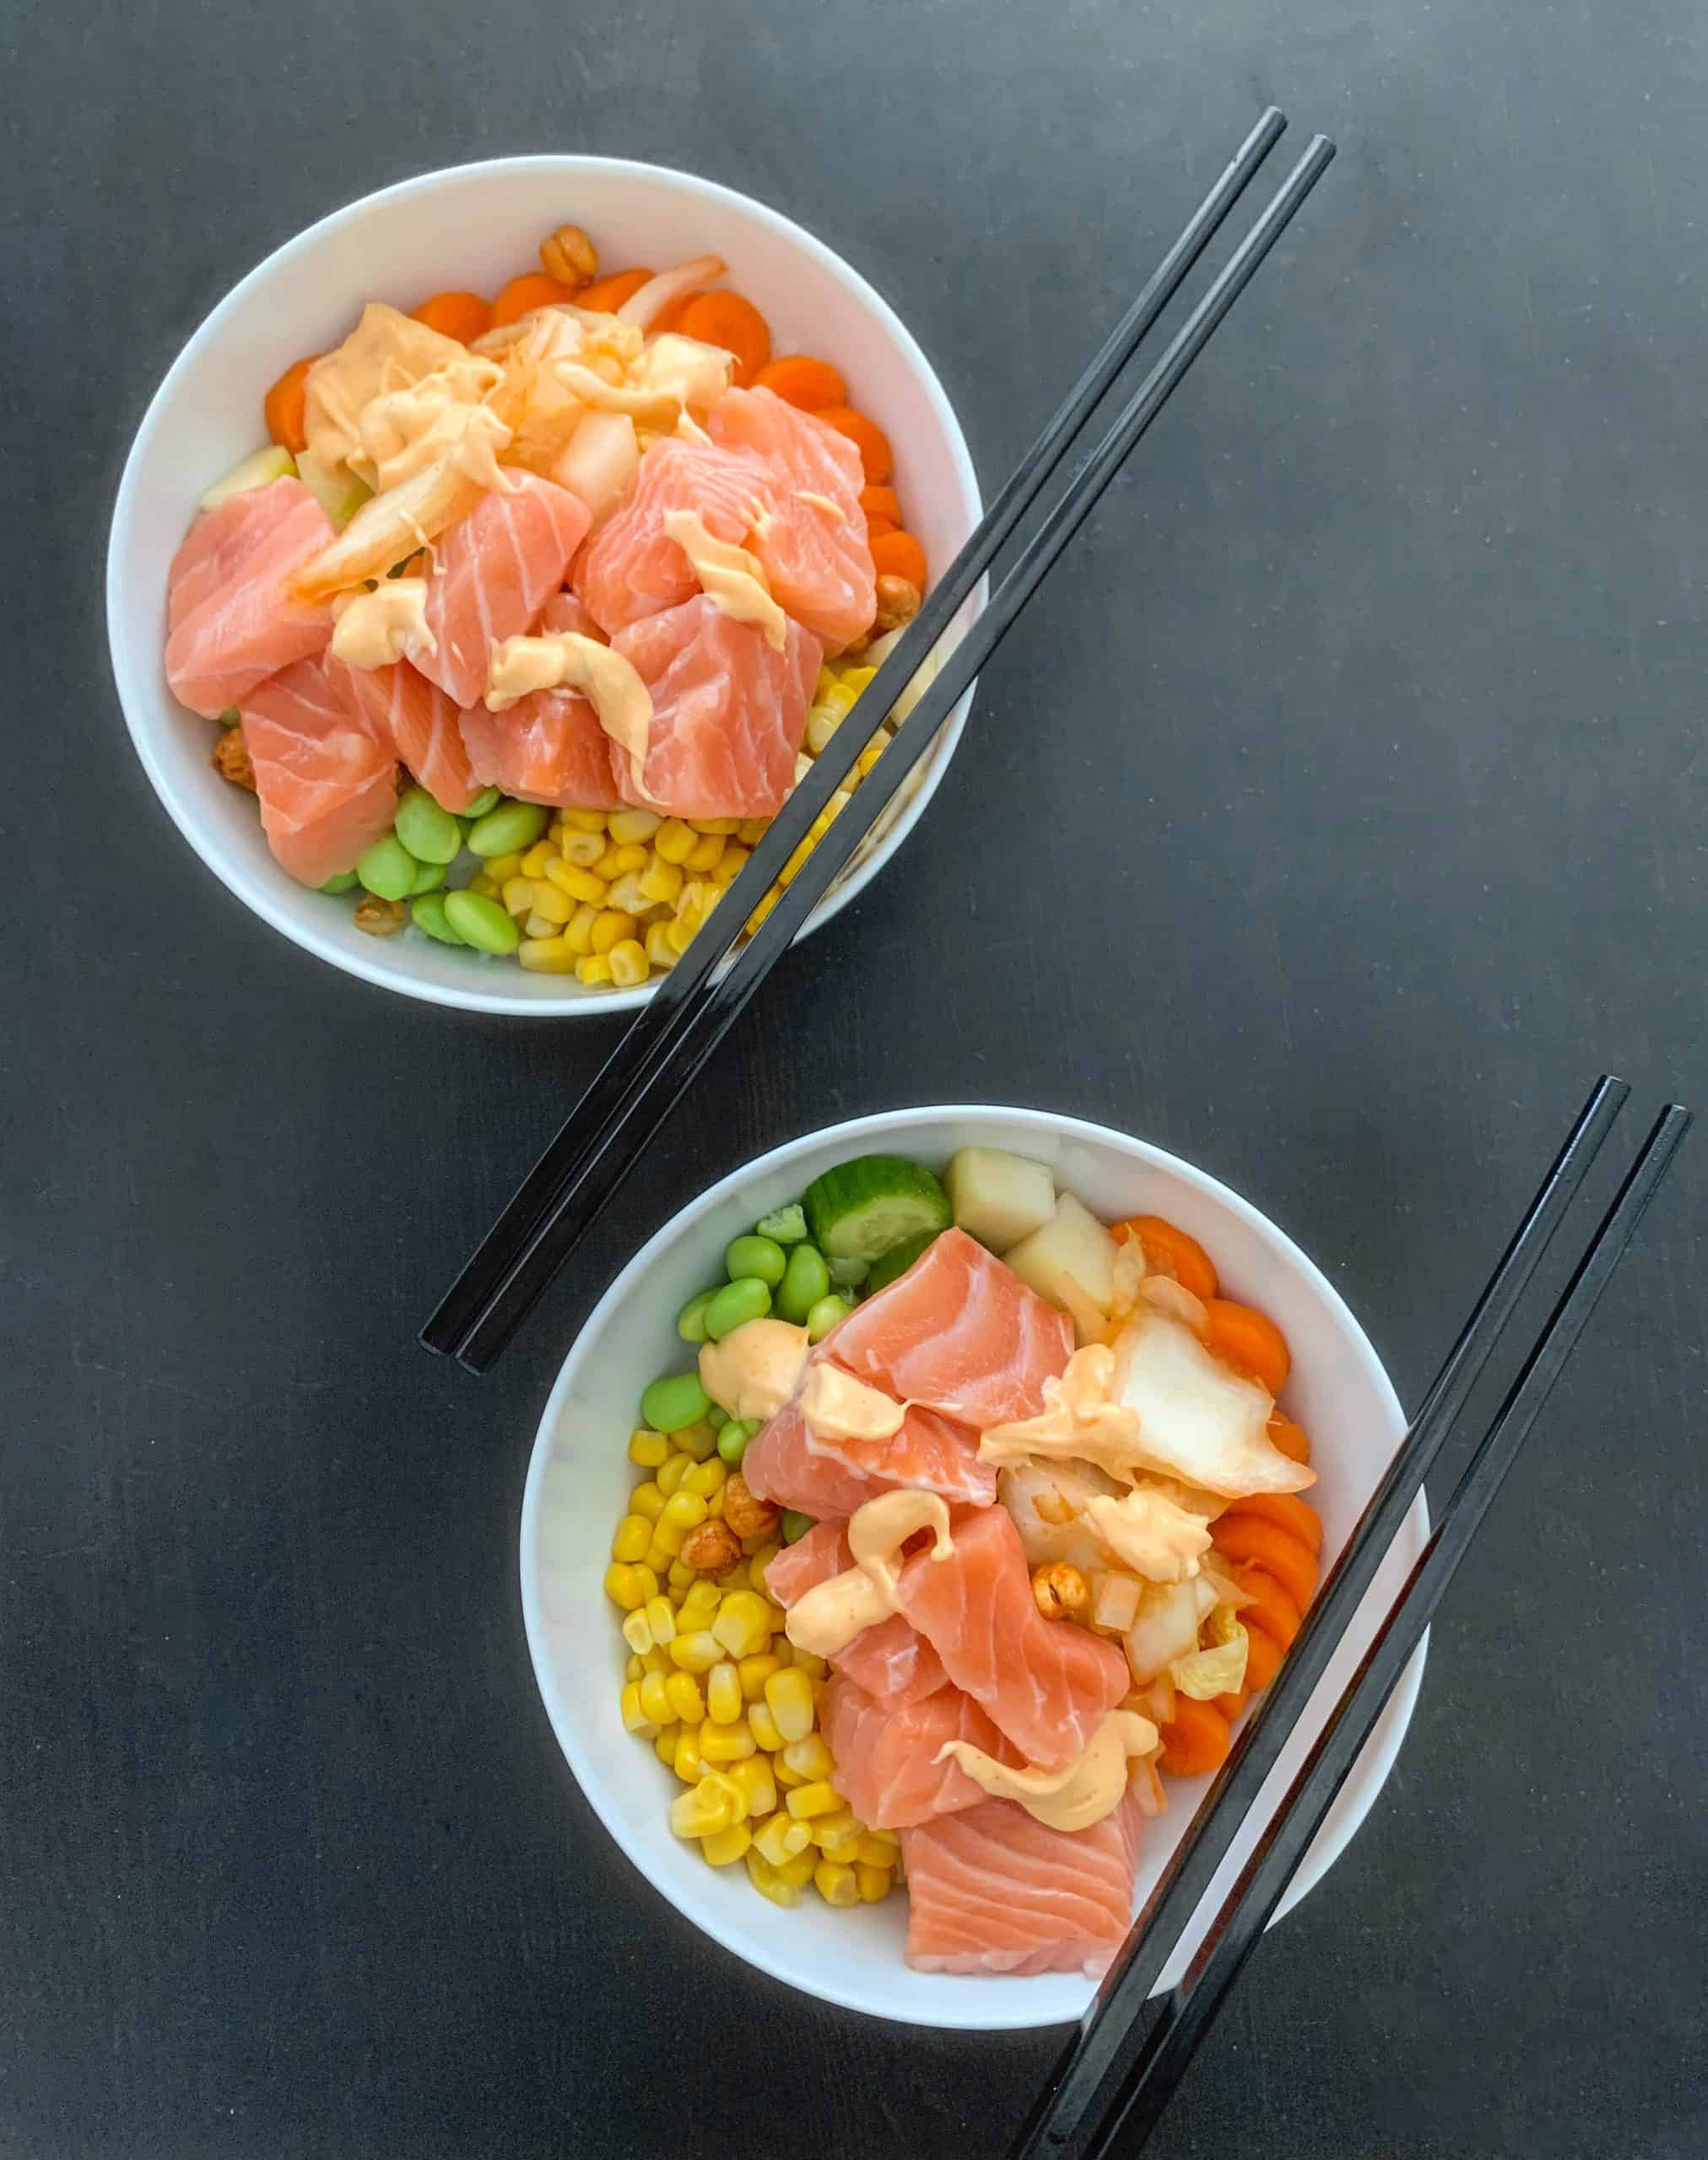 7 Easy Lunch Ideas for Everyday of the Week